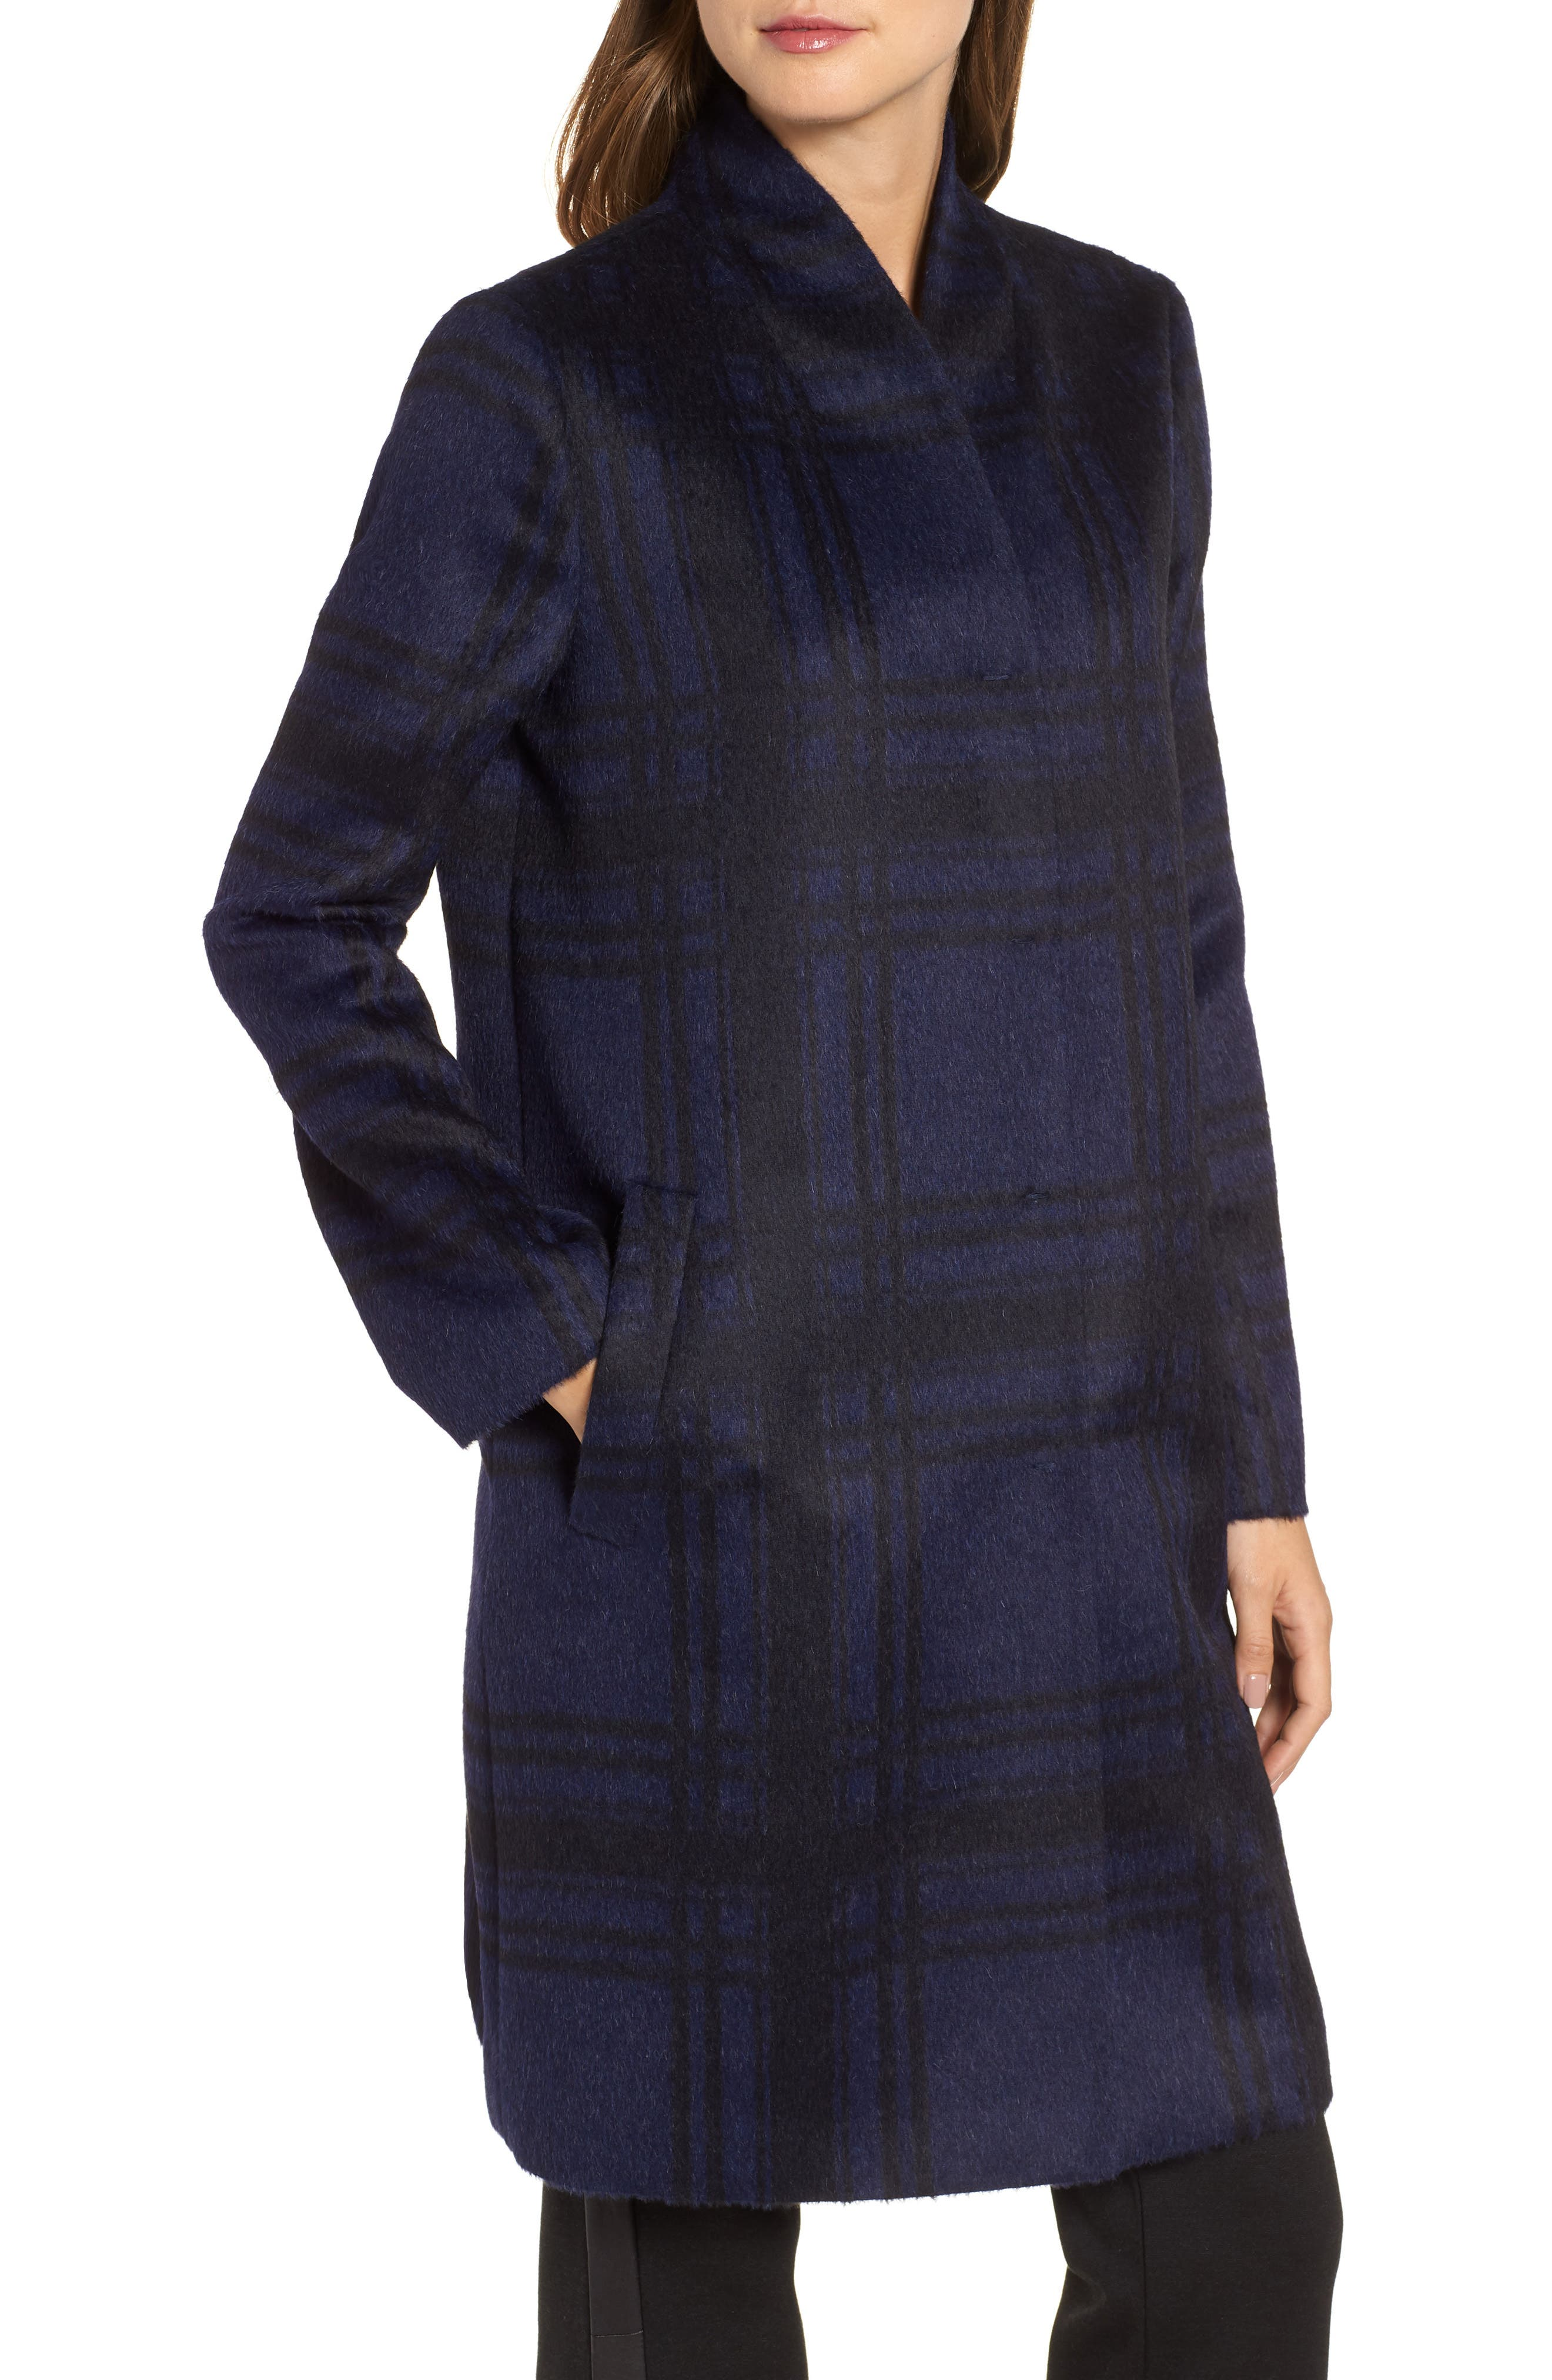 Plaid Alpaca Blend Coat,                             Alternate thumbnail 4, color,                             419